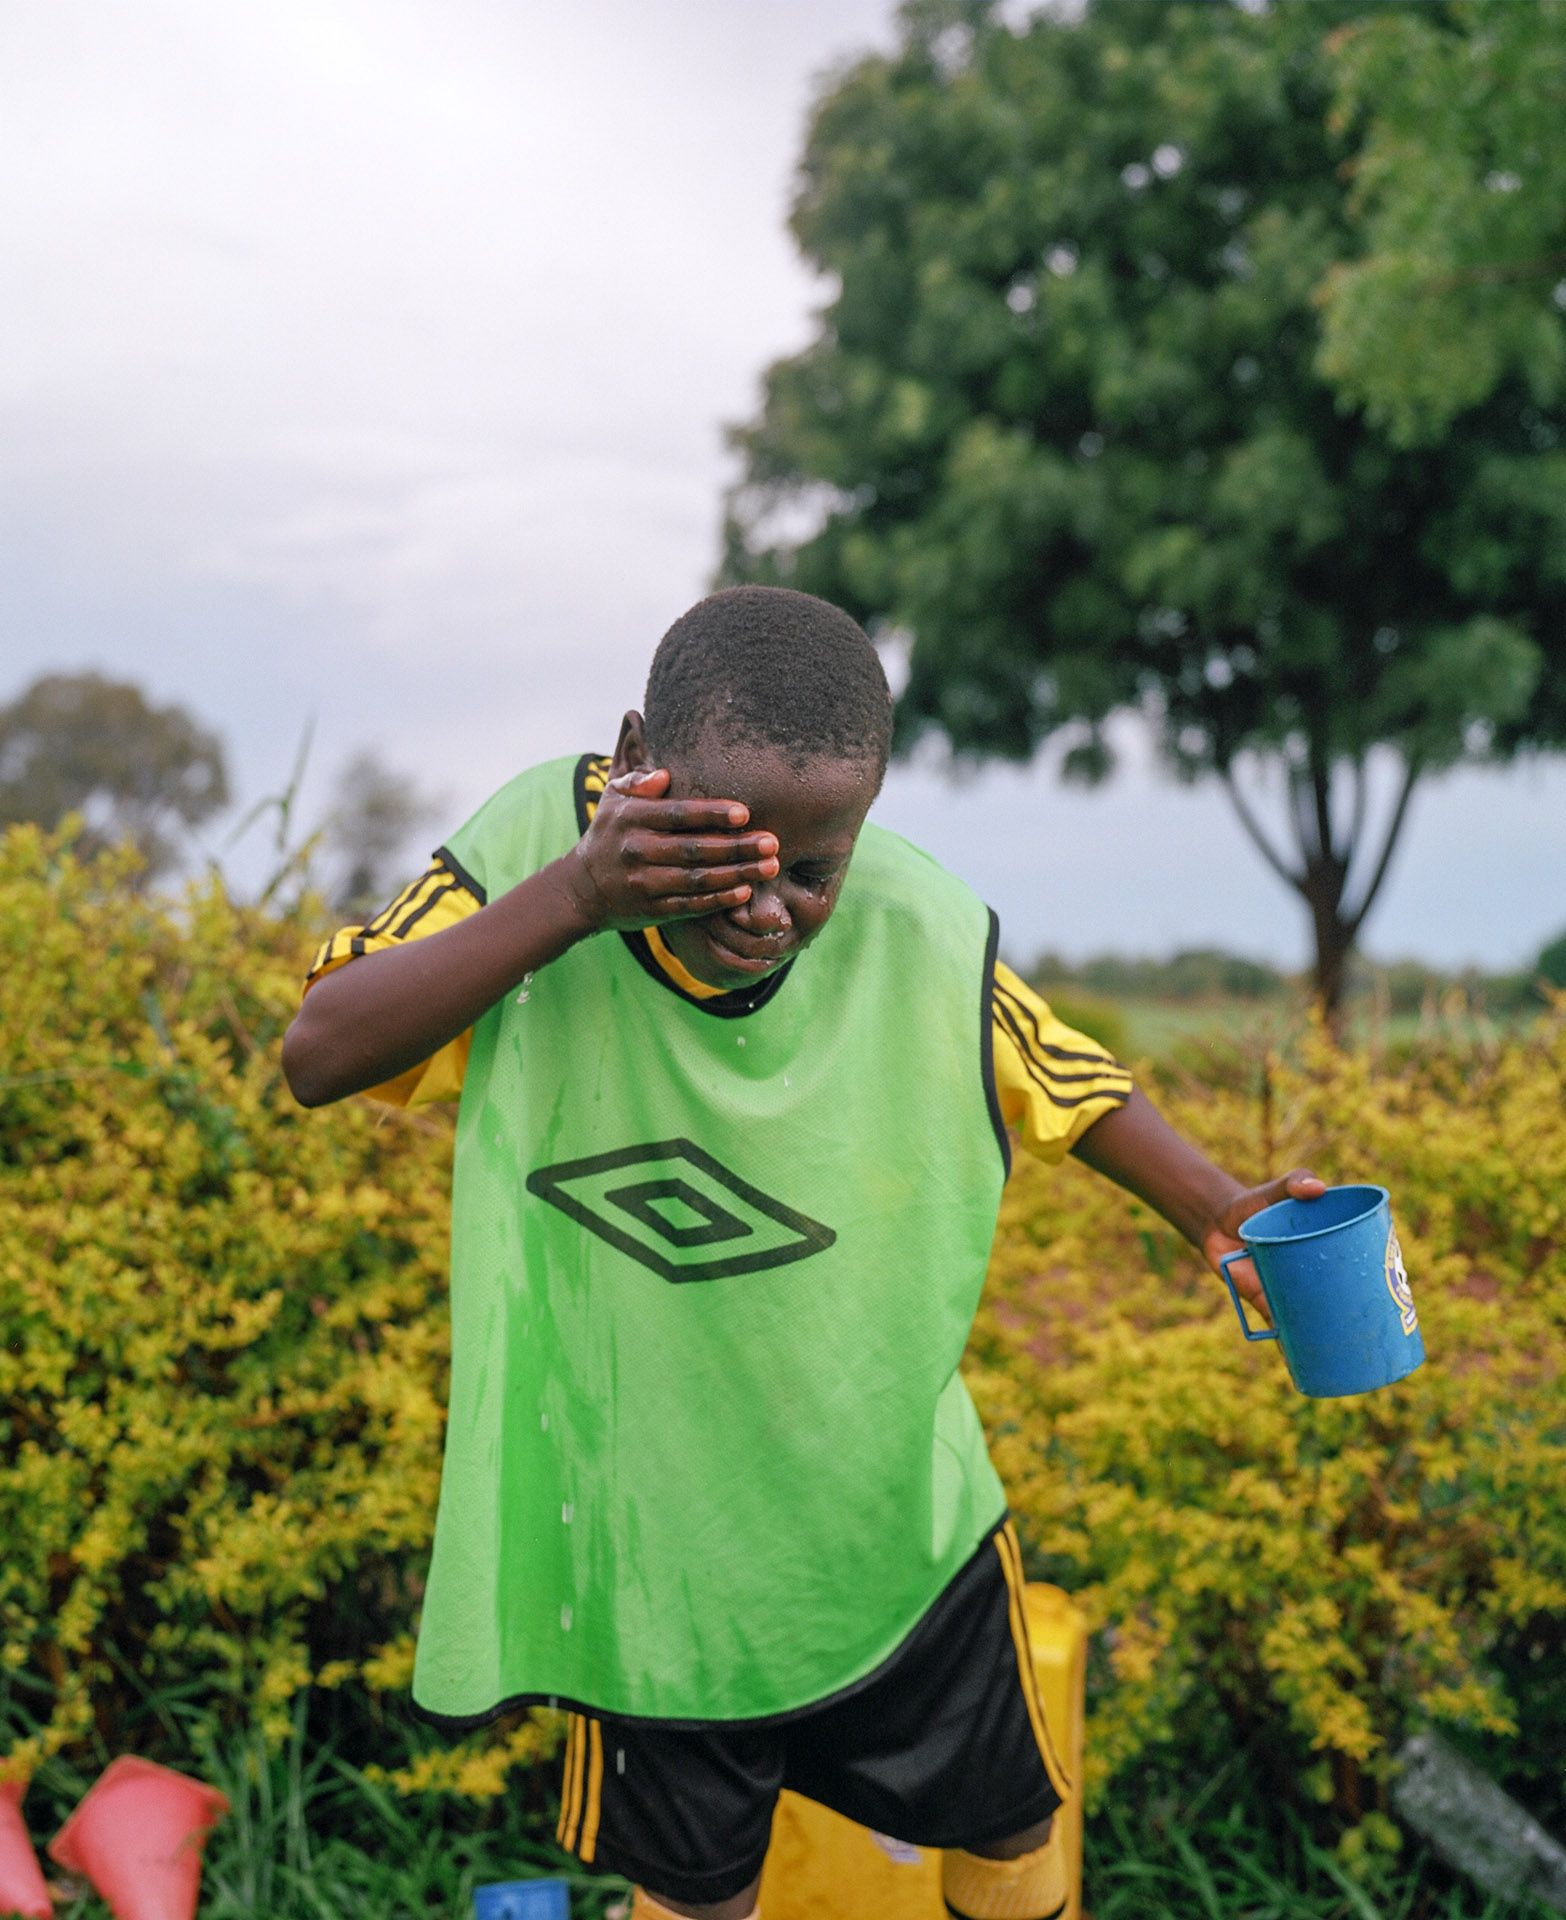 young black boy rinsing his face with water by Alexi Hobbs in Uganda for Football for good with Sportsnet